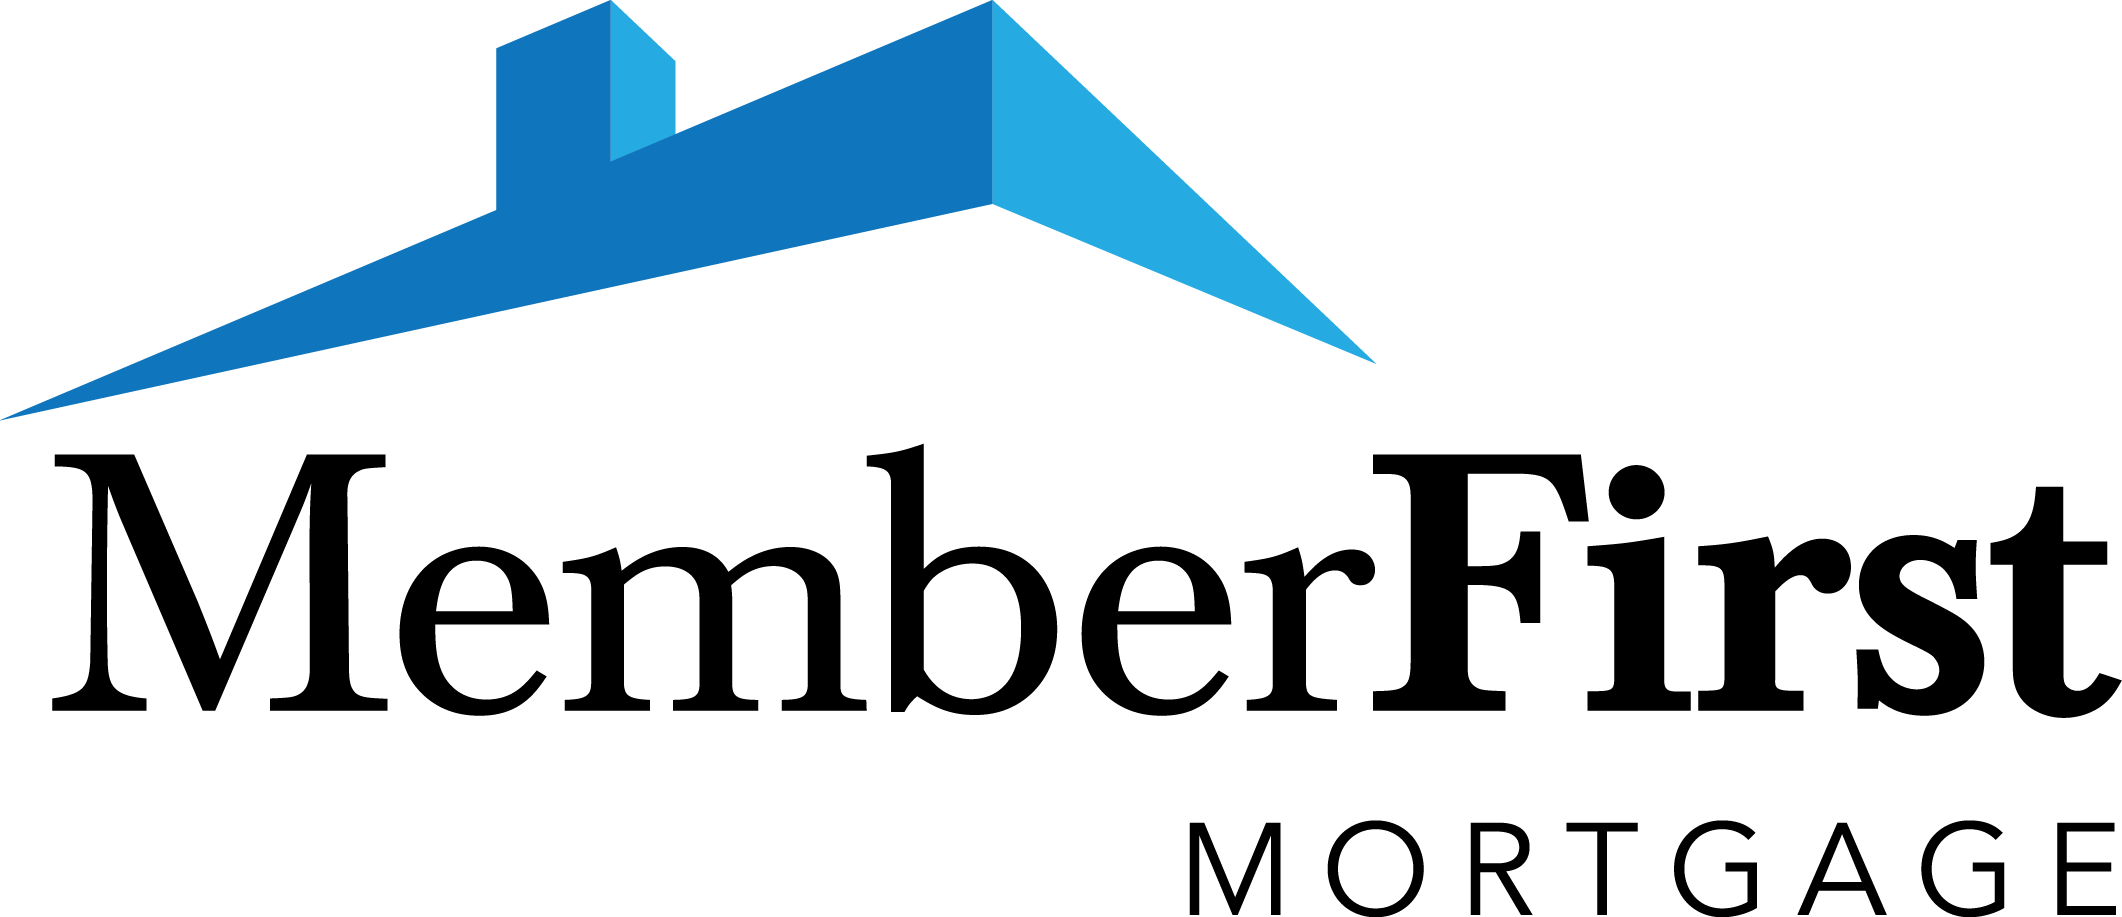 Member First Mortgage transparent logo